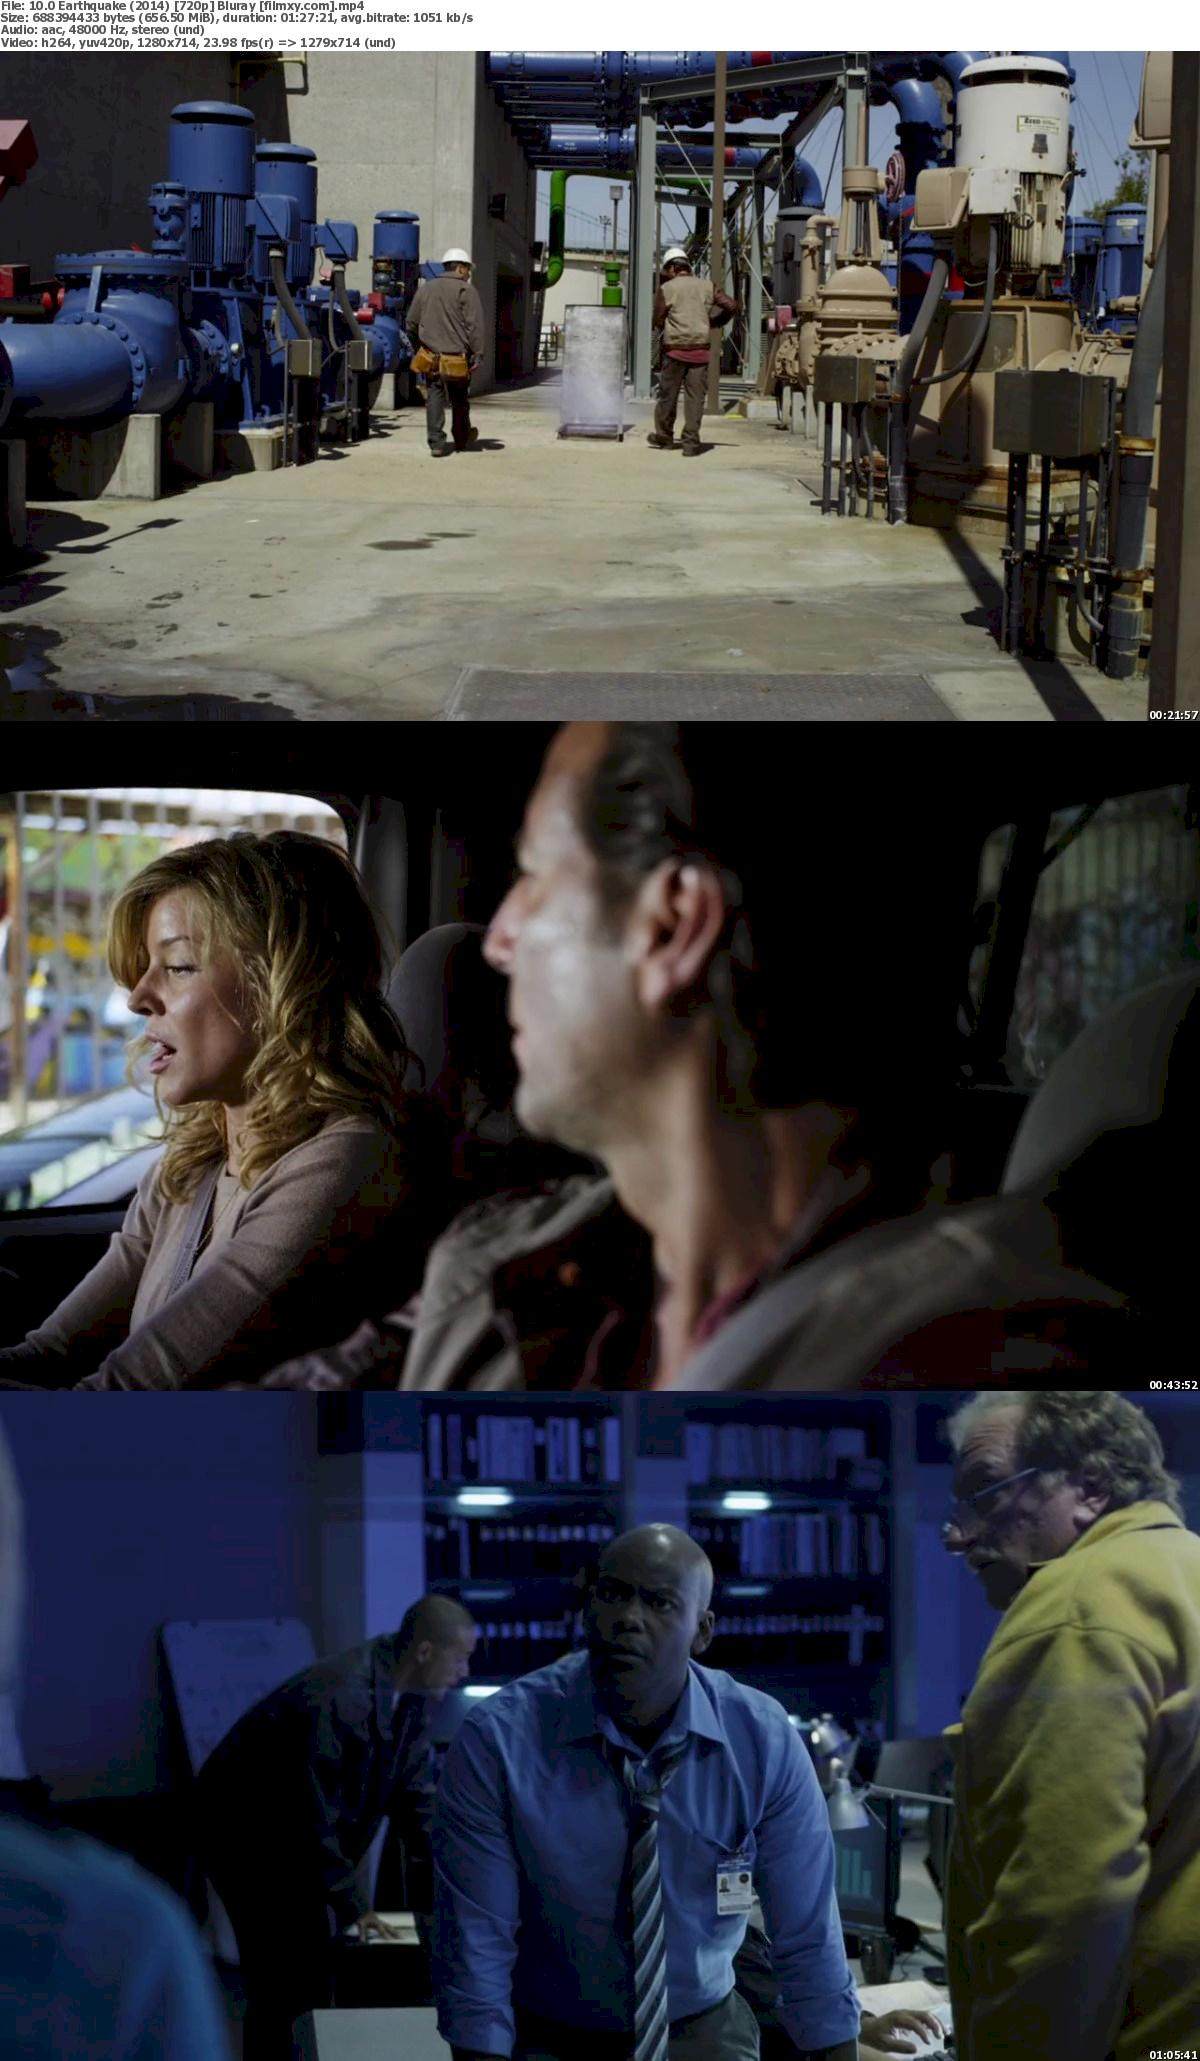 10.0 Earthquake (2014) 720p & 1080p Bluray Free Download 720p Screenshot